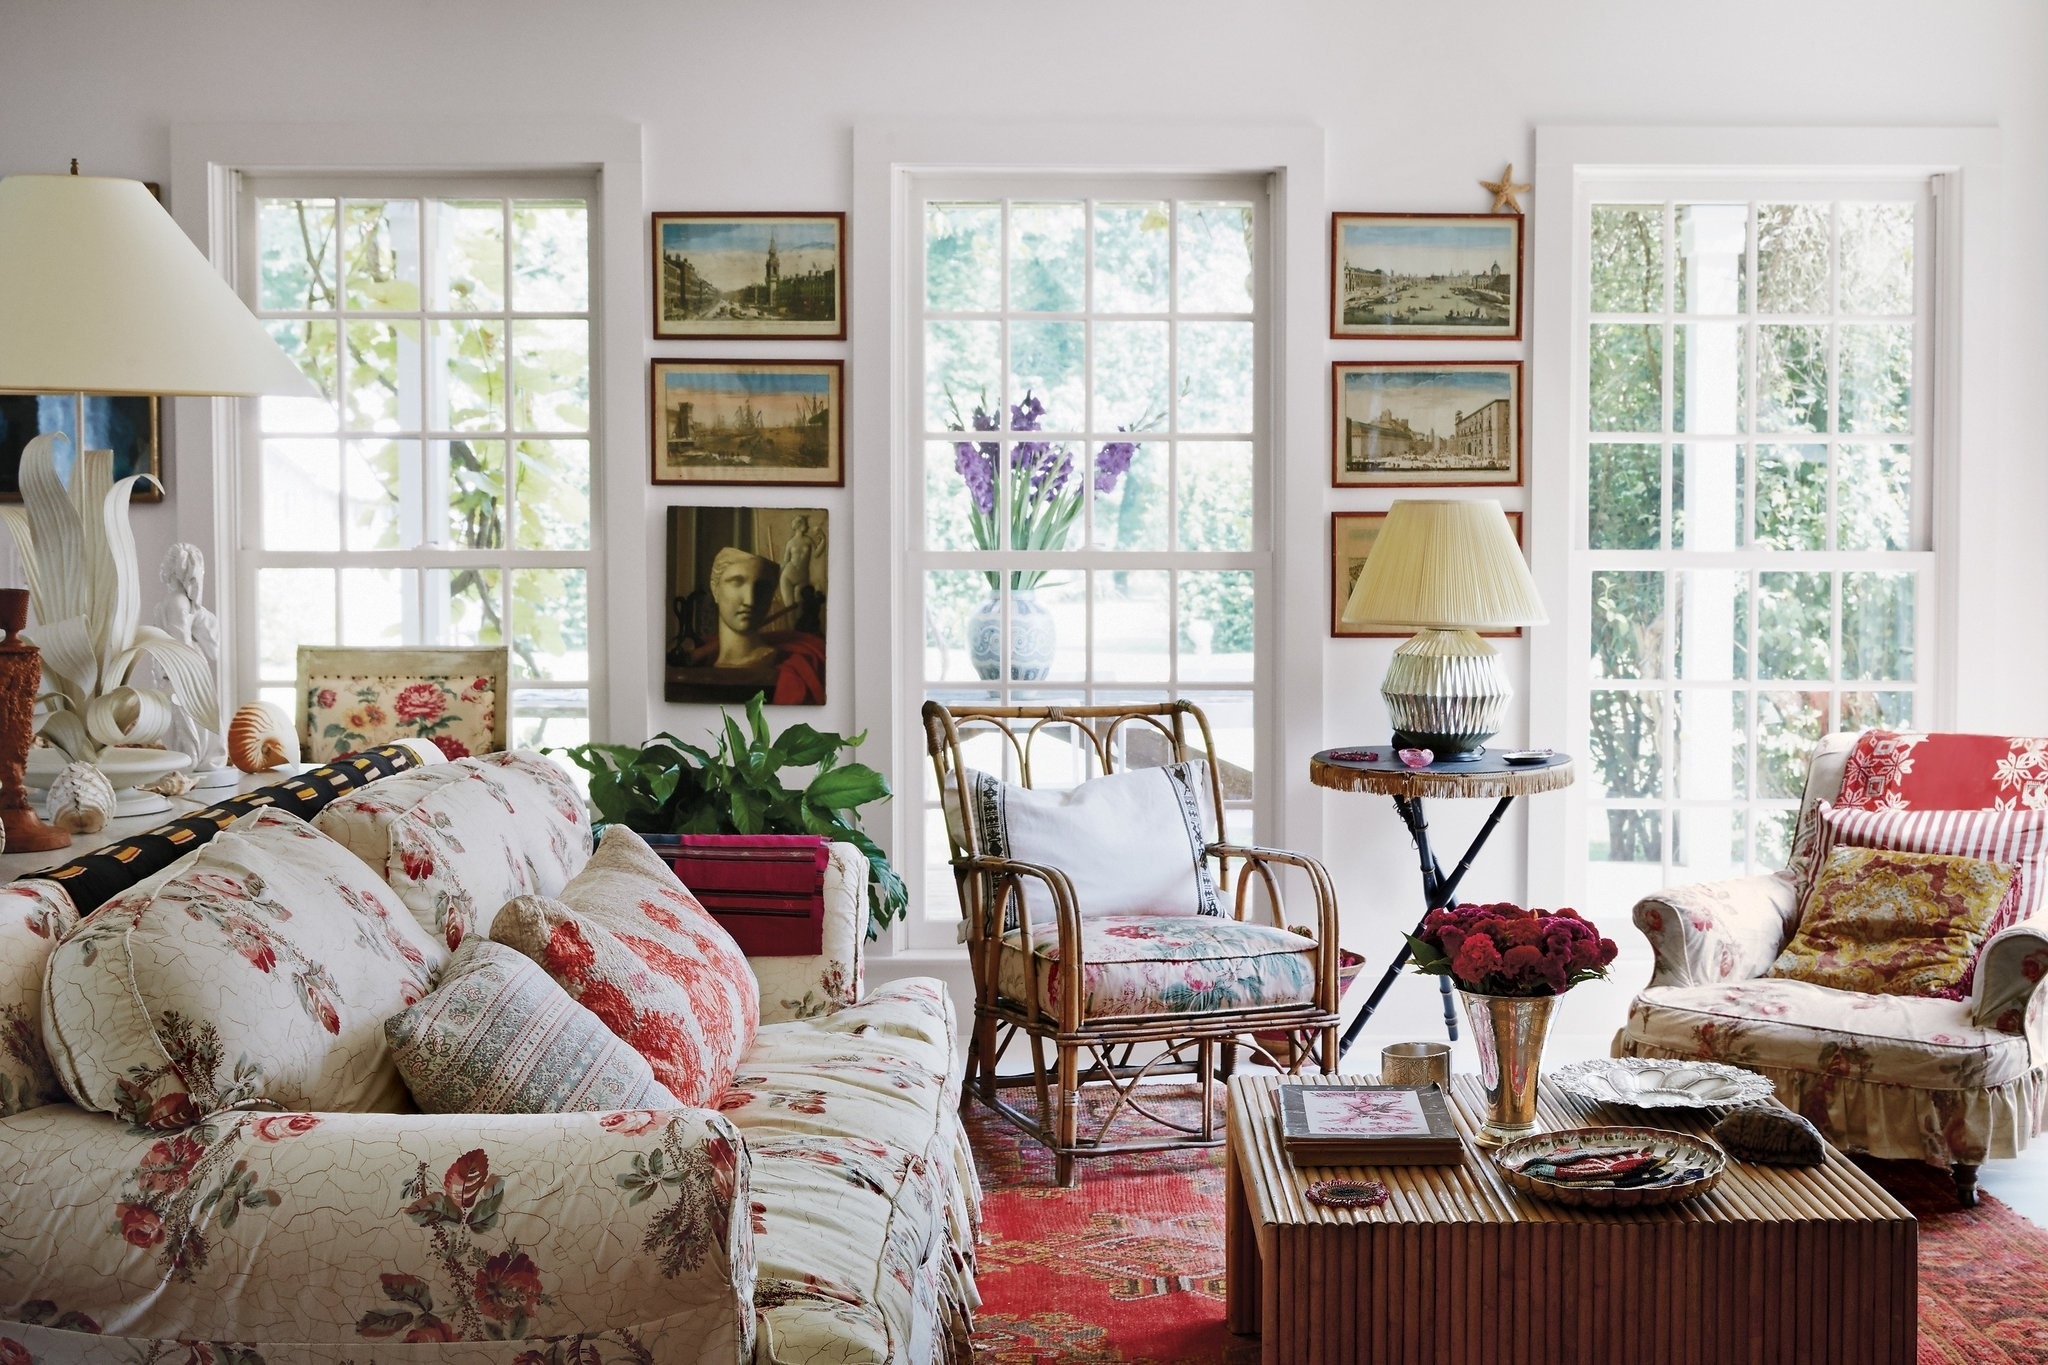 Exquisite Pleasures – The Living Room, With A Sofa And Armchairs Within Popular Chintz Sofas (View 8 of 20)